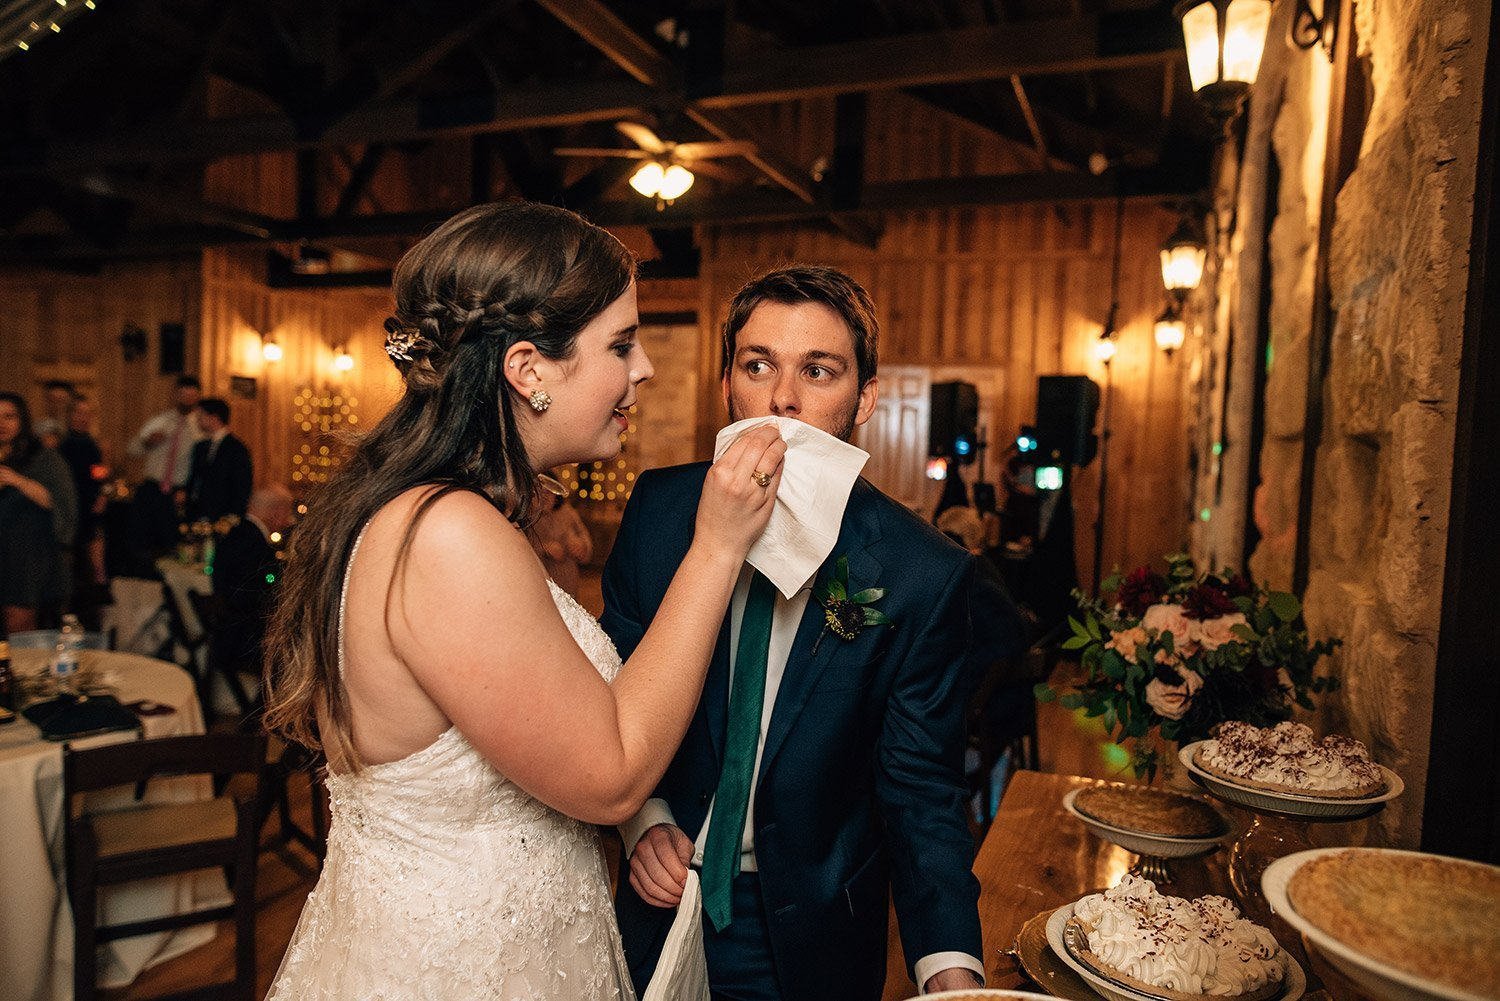 bride wiping grooms mouth after cutting pie instead of cake